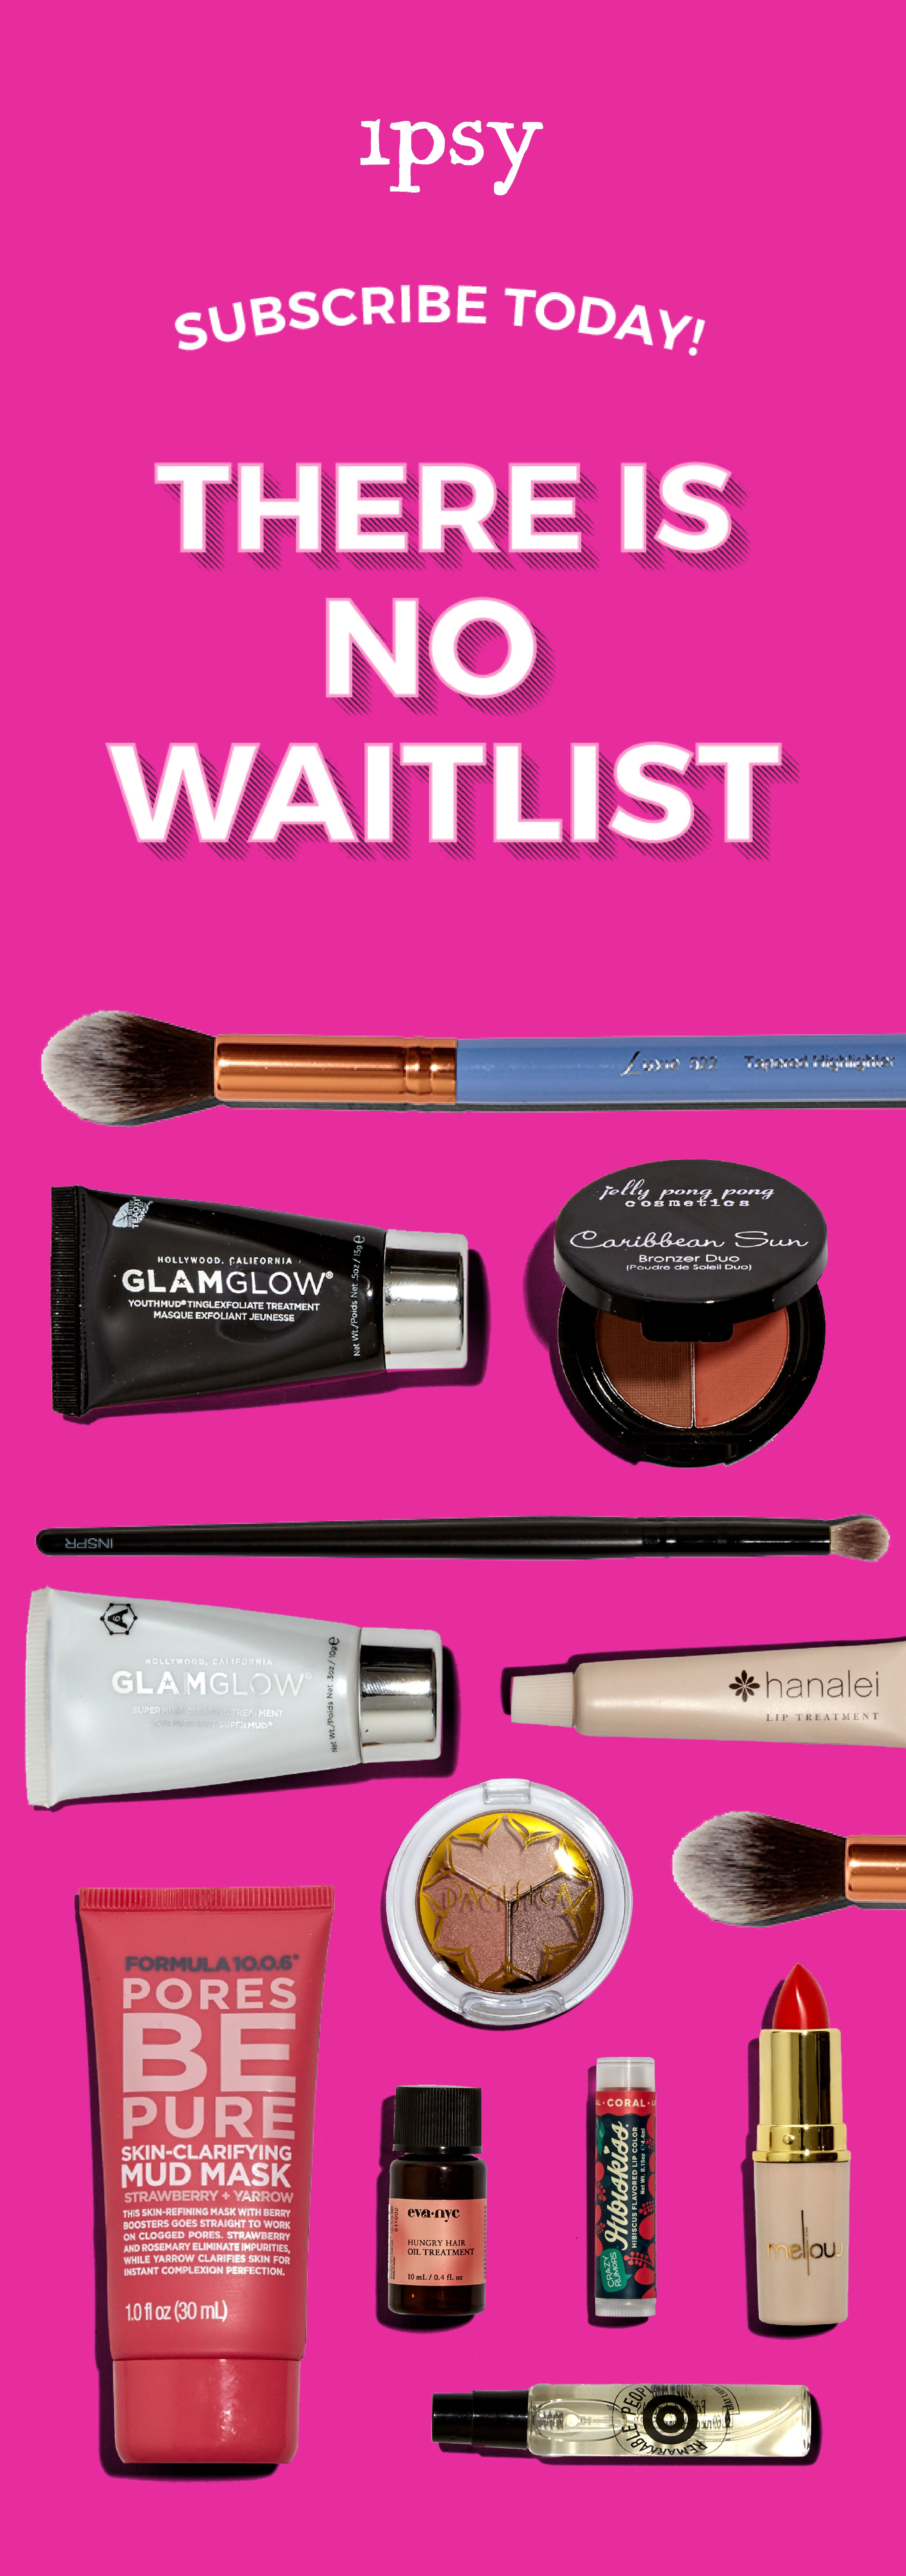 There S No Waitlist For The Ipsy Glam Bag Limited Time Only Hurry Up